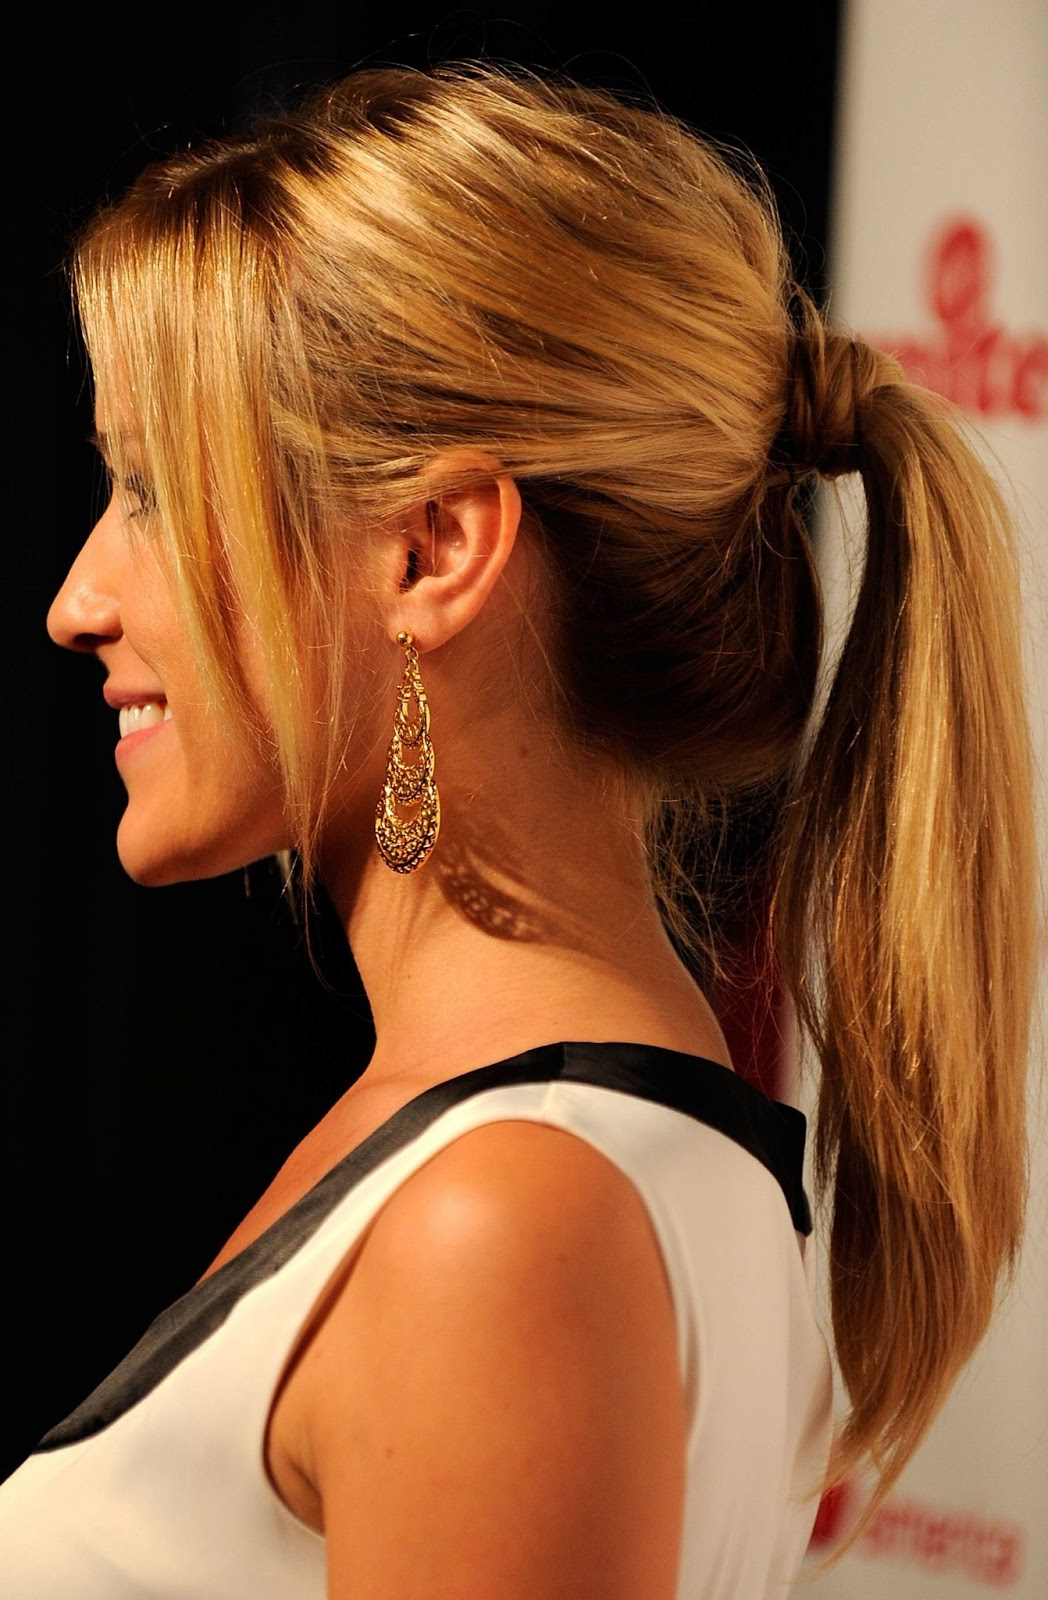 The Shaggy Palm Tree: Fine Attractive Thin Hair For Every